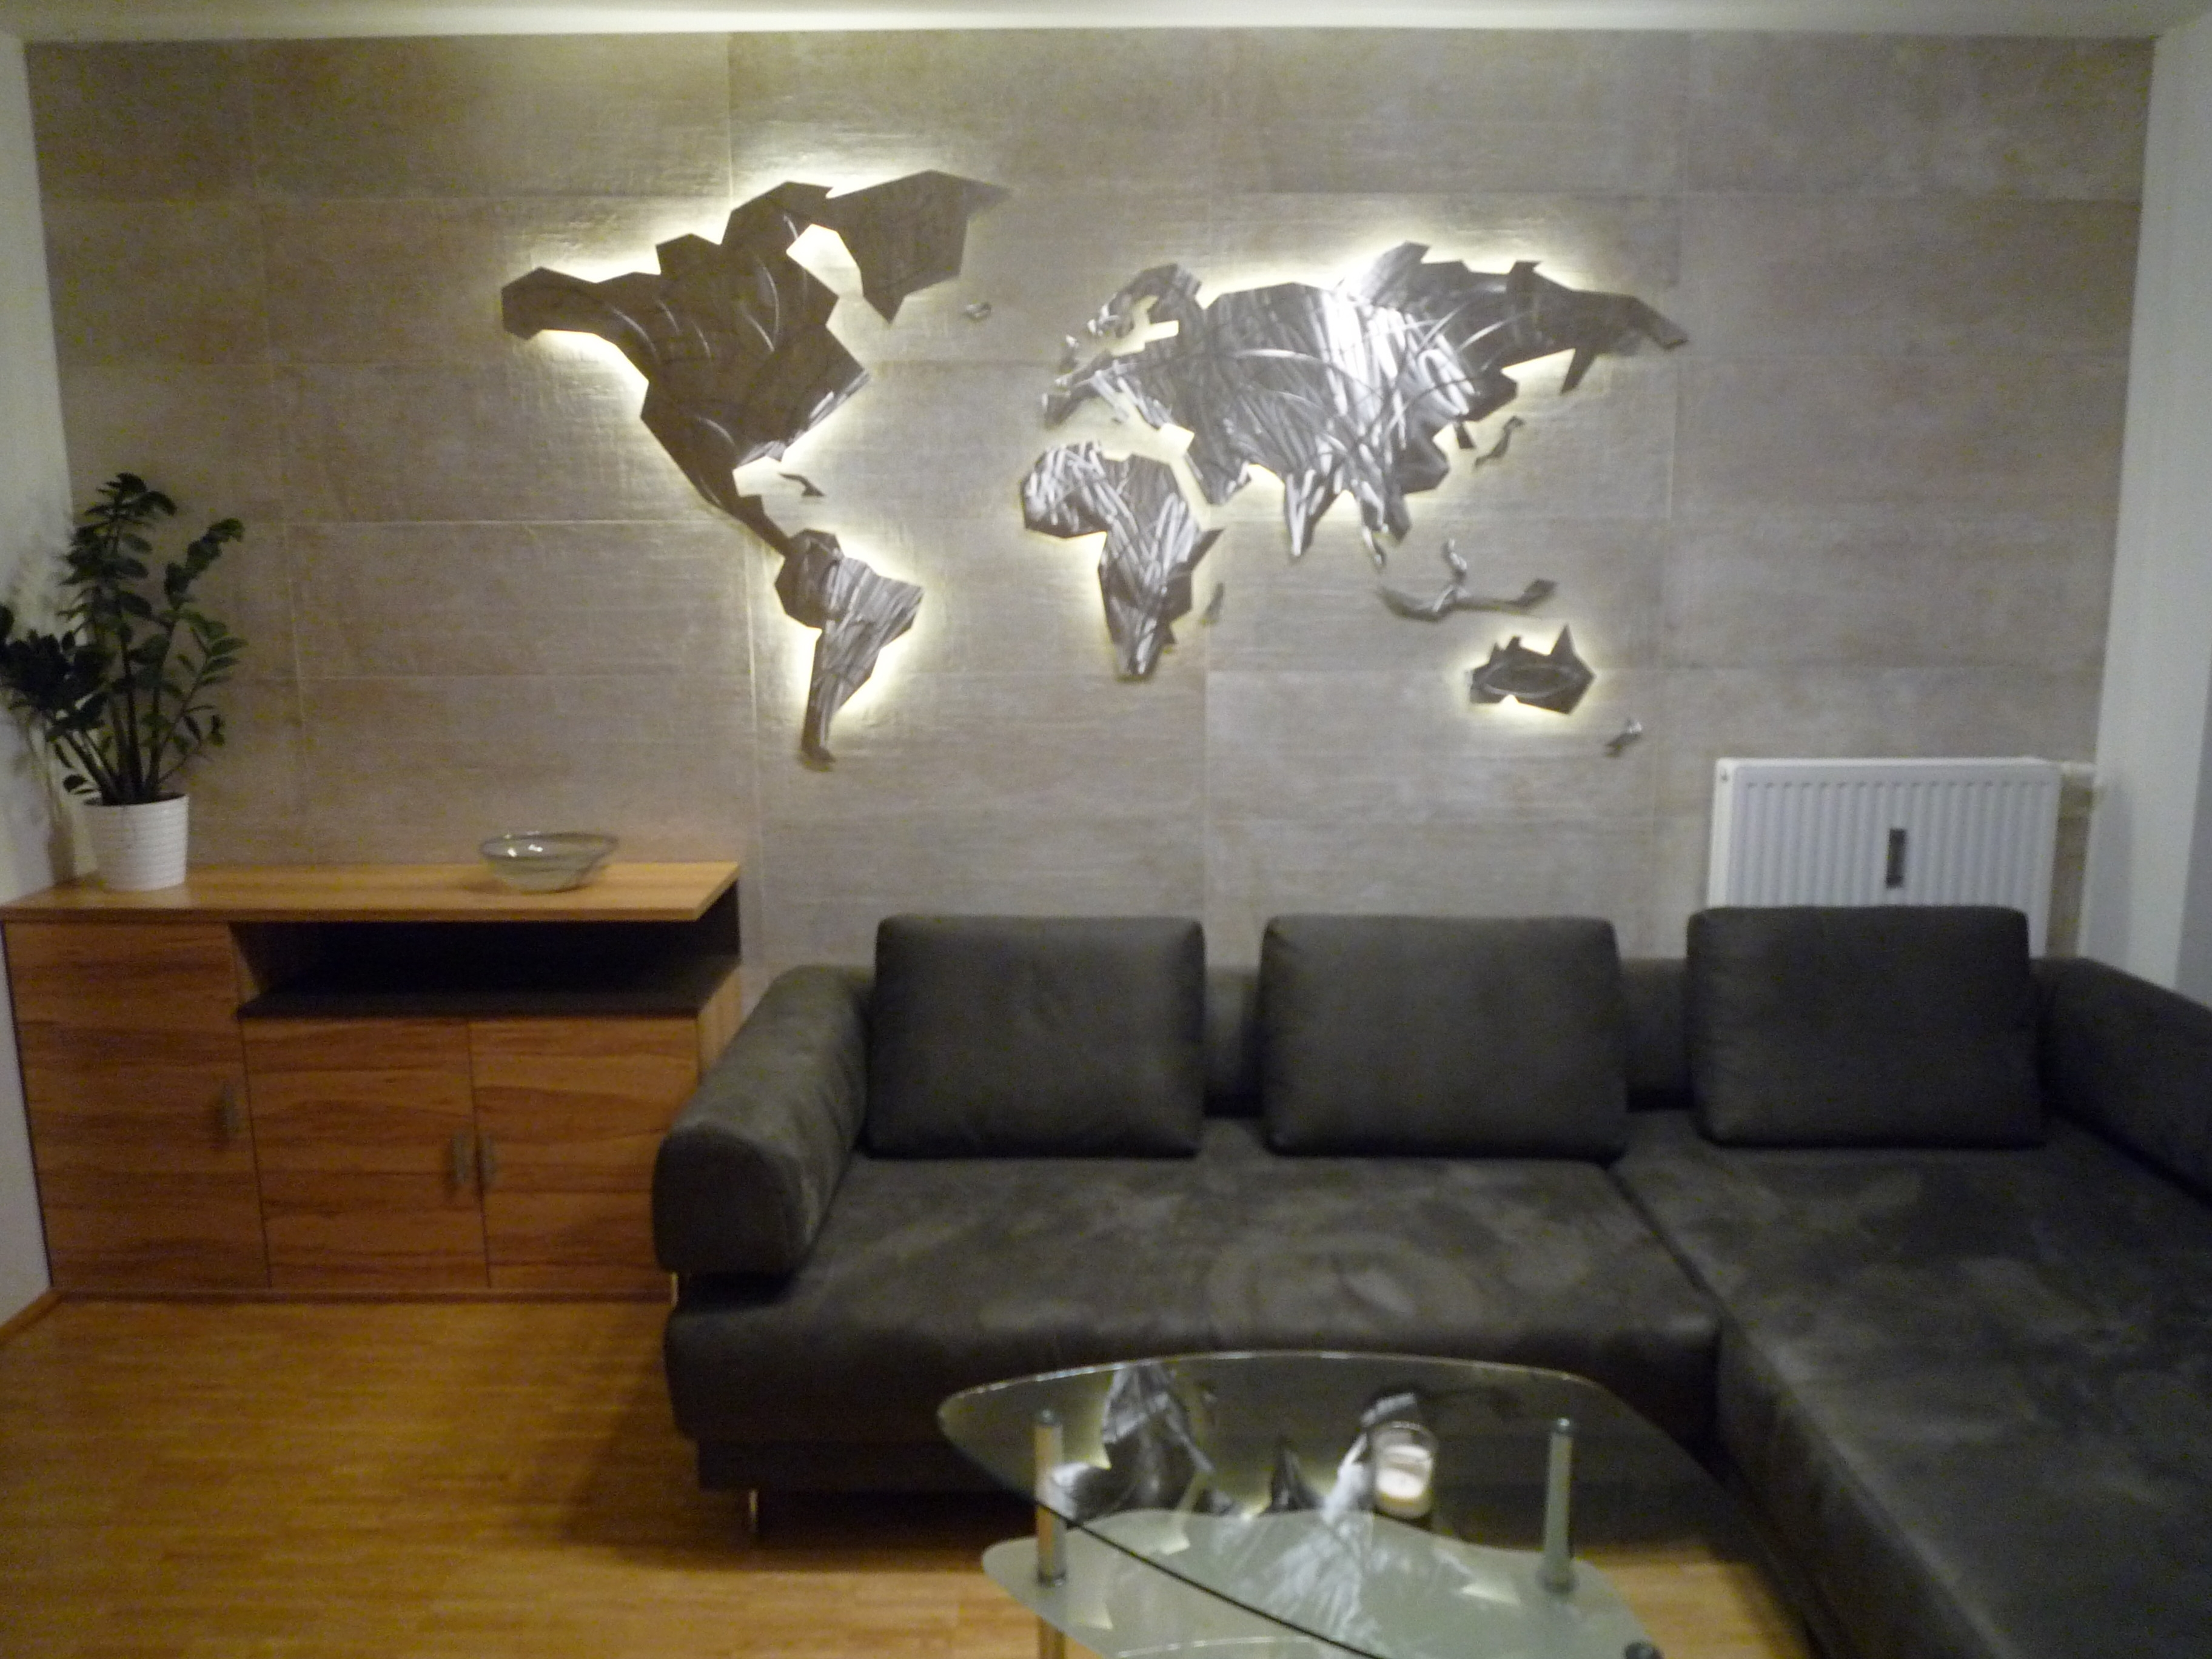 39 Inspirational World Map Wall Art Framed Design Ideas Of Led Wall regarding Maps Wall Art (Image 2 of 20)